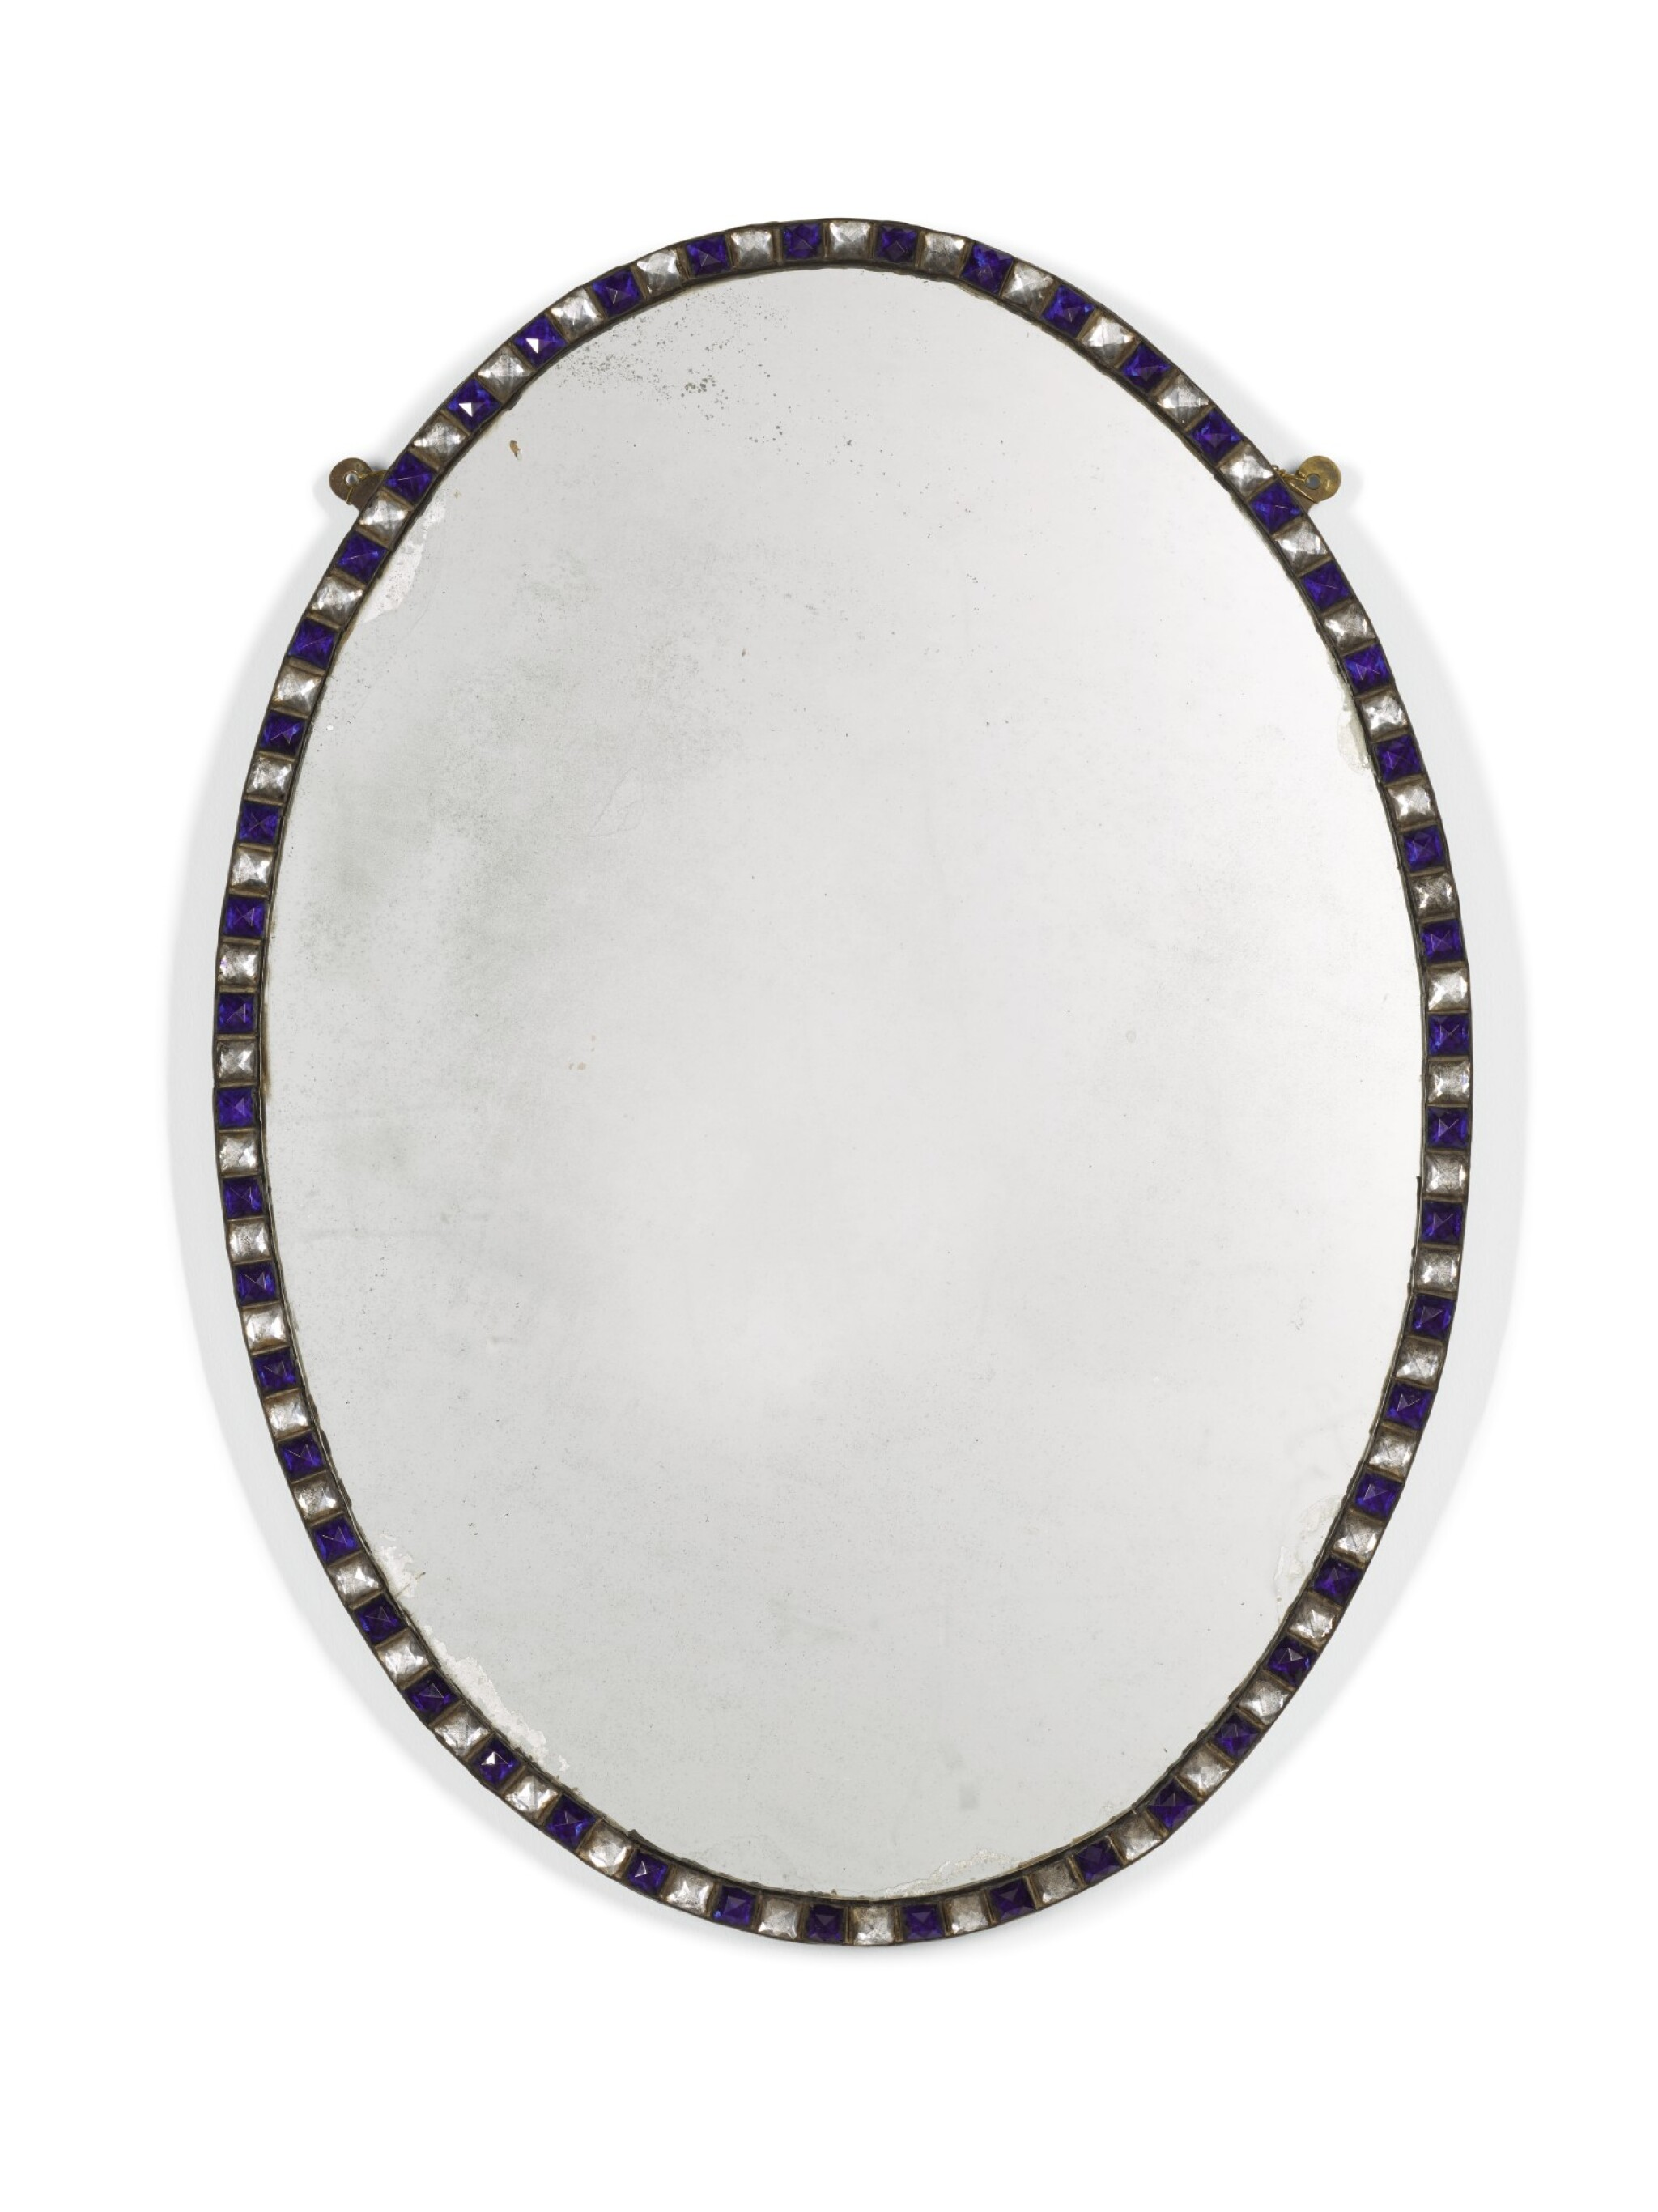 View full screen - View 1 of Lot 102. A PAIR OF IRISH BLUE AND CLEAR GLASS BORDERED OVAL MIRRORS, GLASS ELEMENTS POSSIBLY LATE 18TH/EARLY 19TH CENTURY.